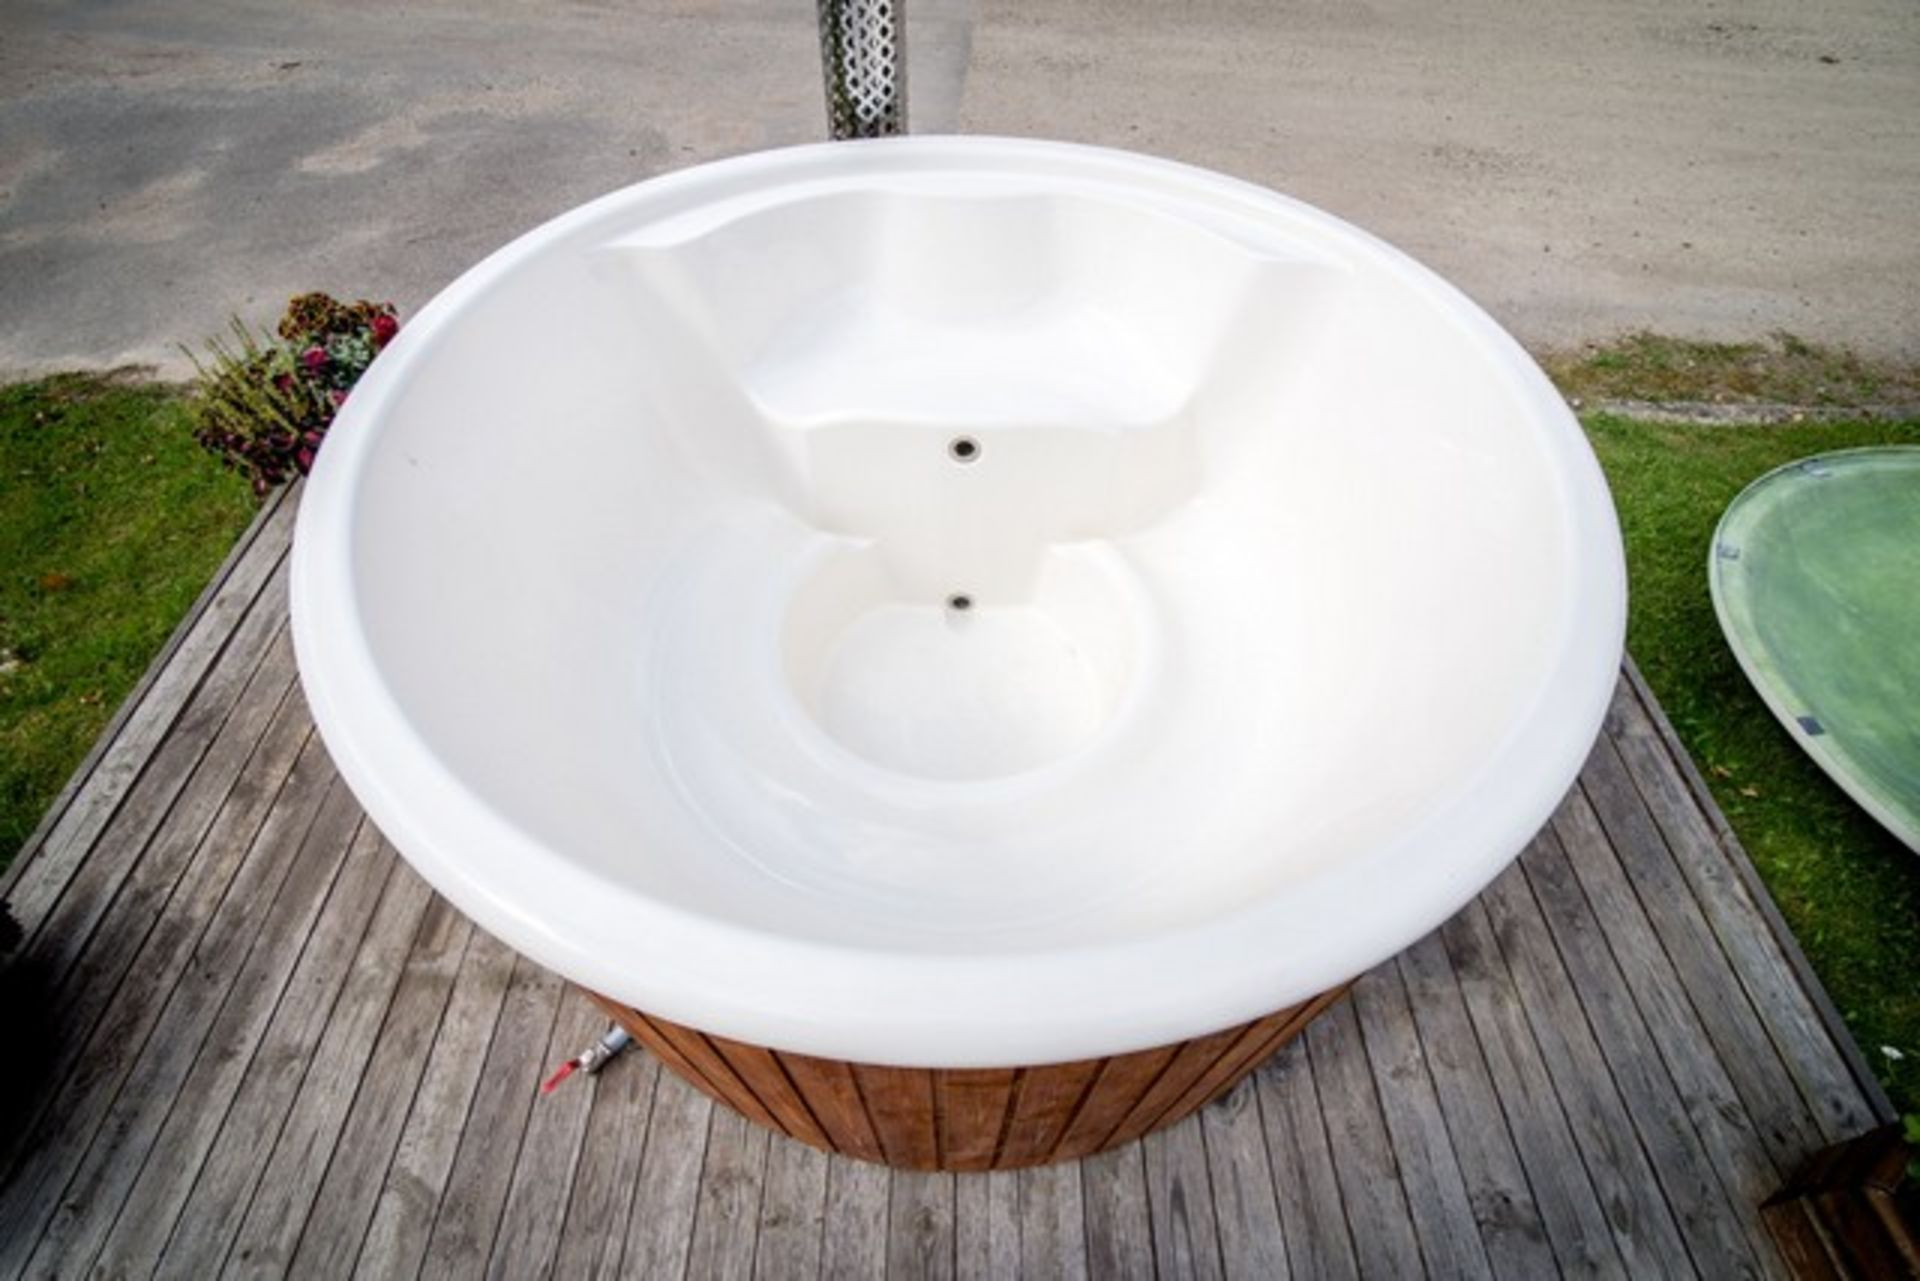 + VAT Brand New 1.8m Fiberglass Hot Tub with Stainless Steel Heater and Chimney - Hot Tub Made from - Image 2 of 2